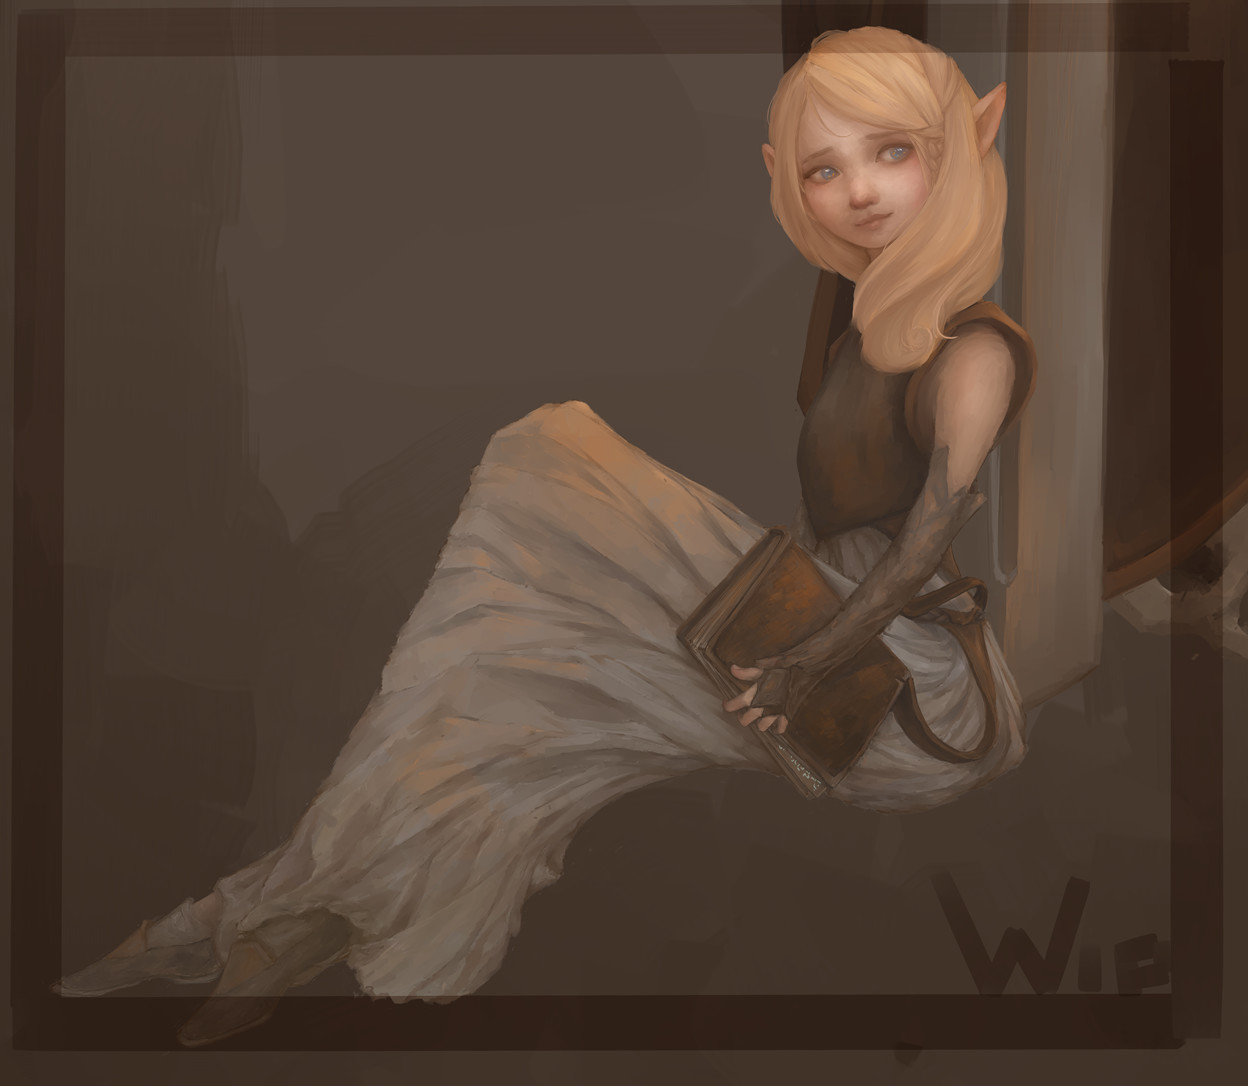 Kate marie rodberg arne fan art treaty of five io seira avelenon wip